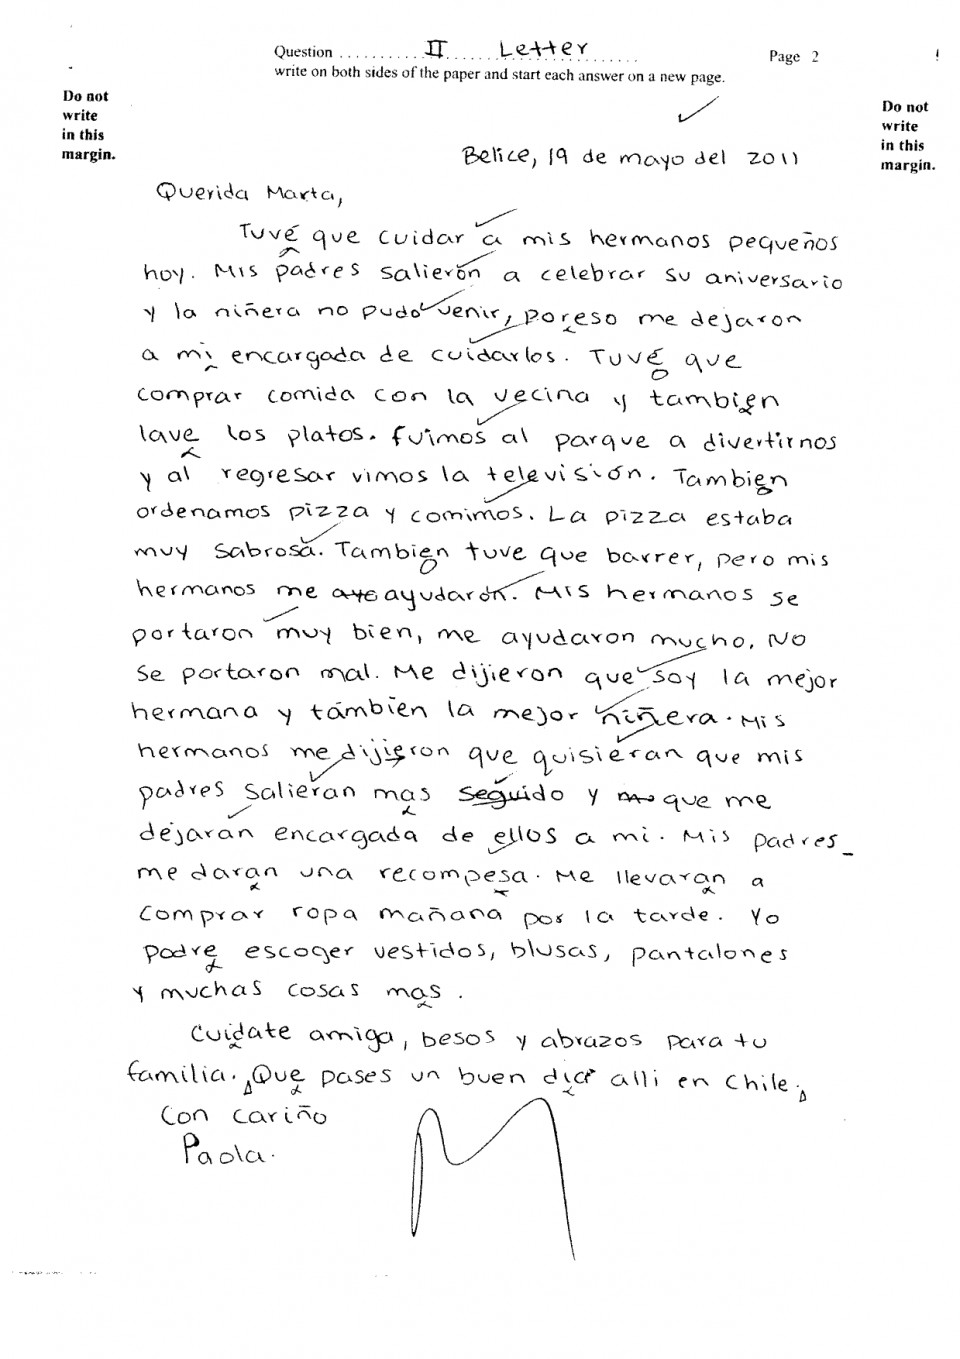 008 Essay Example Csec June2011 Paper2 Sectionii Letter Pg2 Ex Translate To Staggering Spanish My Into What Does Mean In 960